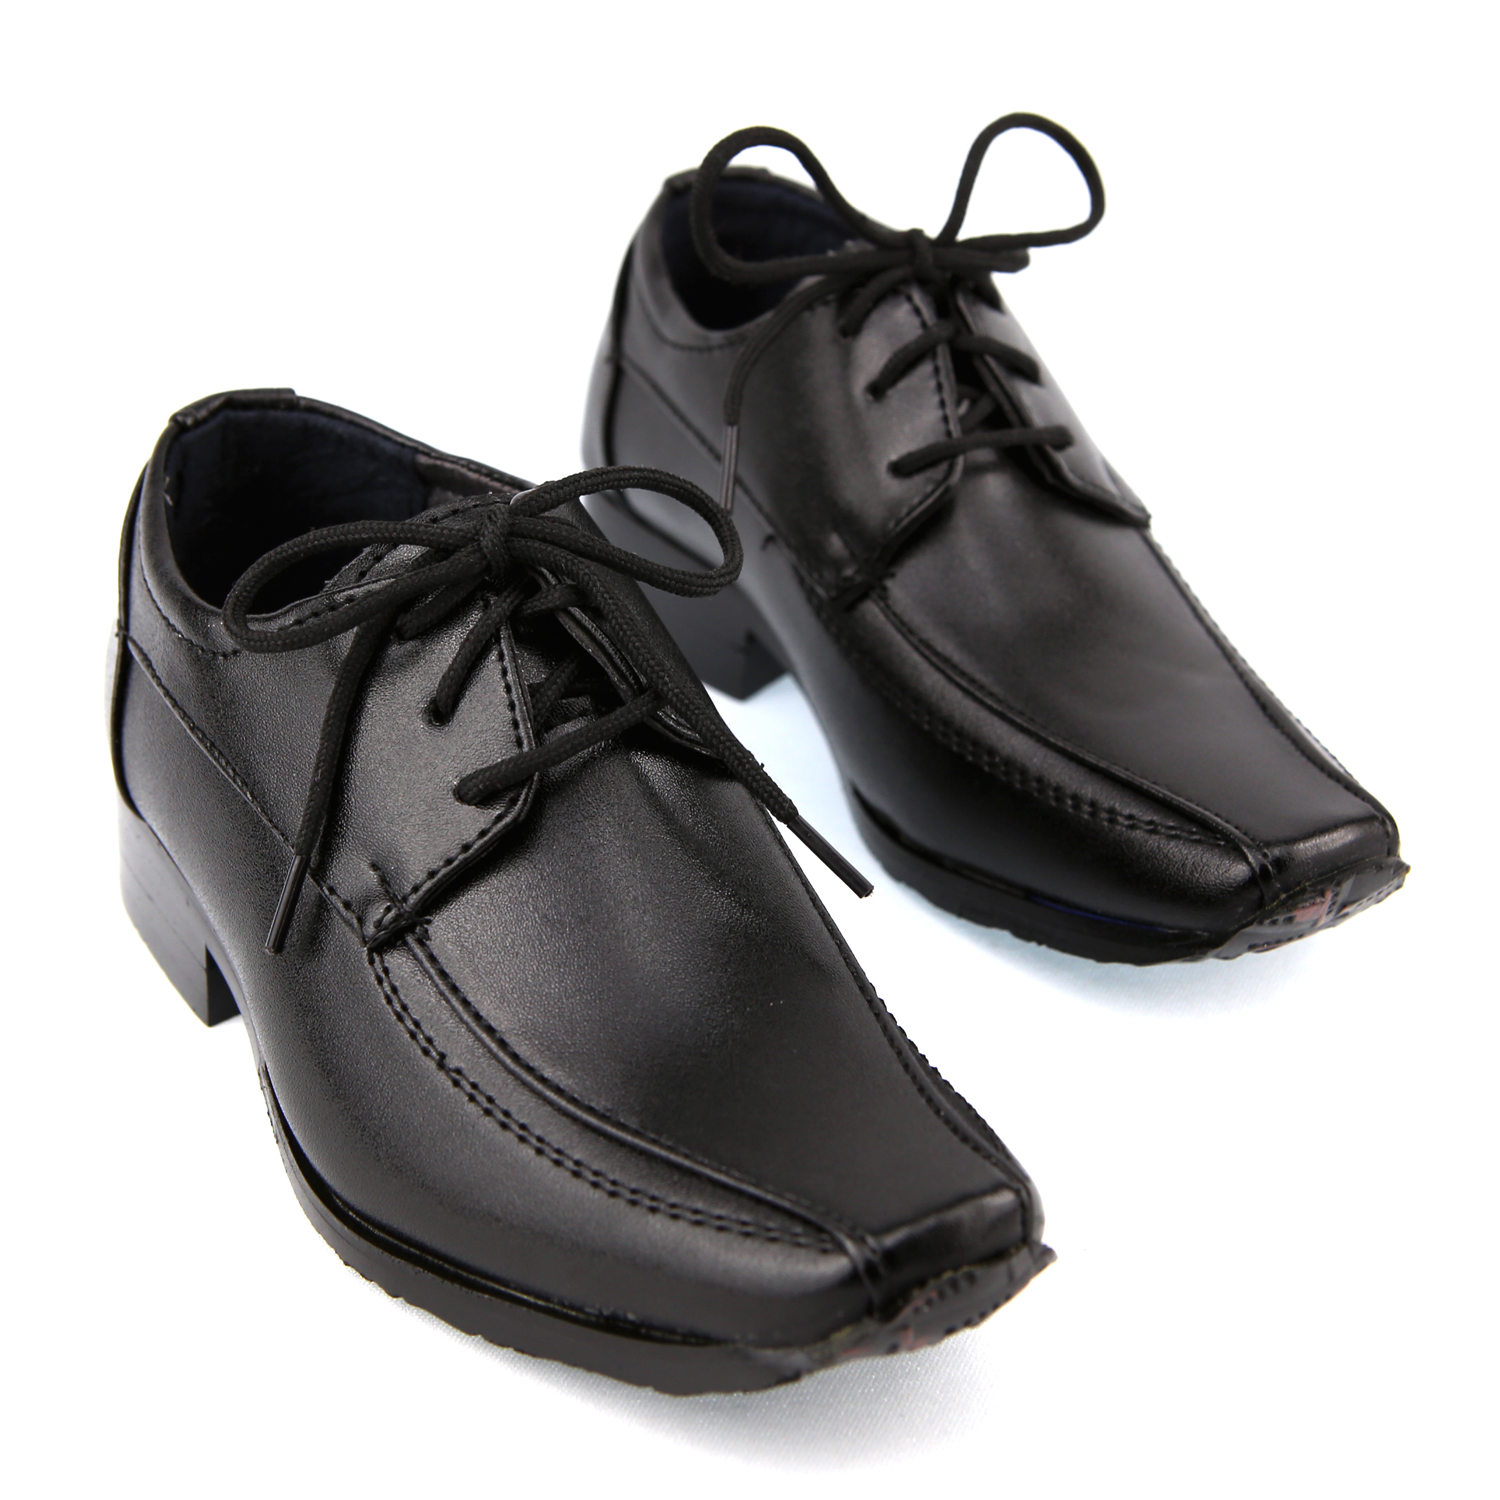 chaussure derby enfant gar on pour c r monie mariage c2111 noir chaussures gar on cadoshop. Black Bedroom Furniture Sets. Home Design Ideas